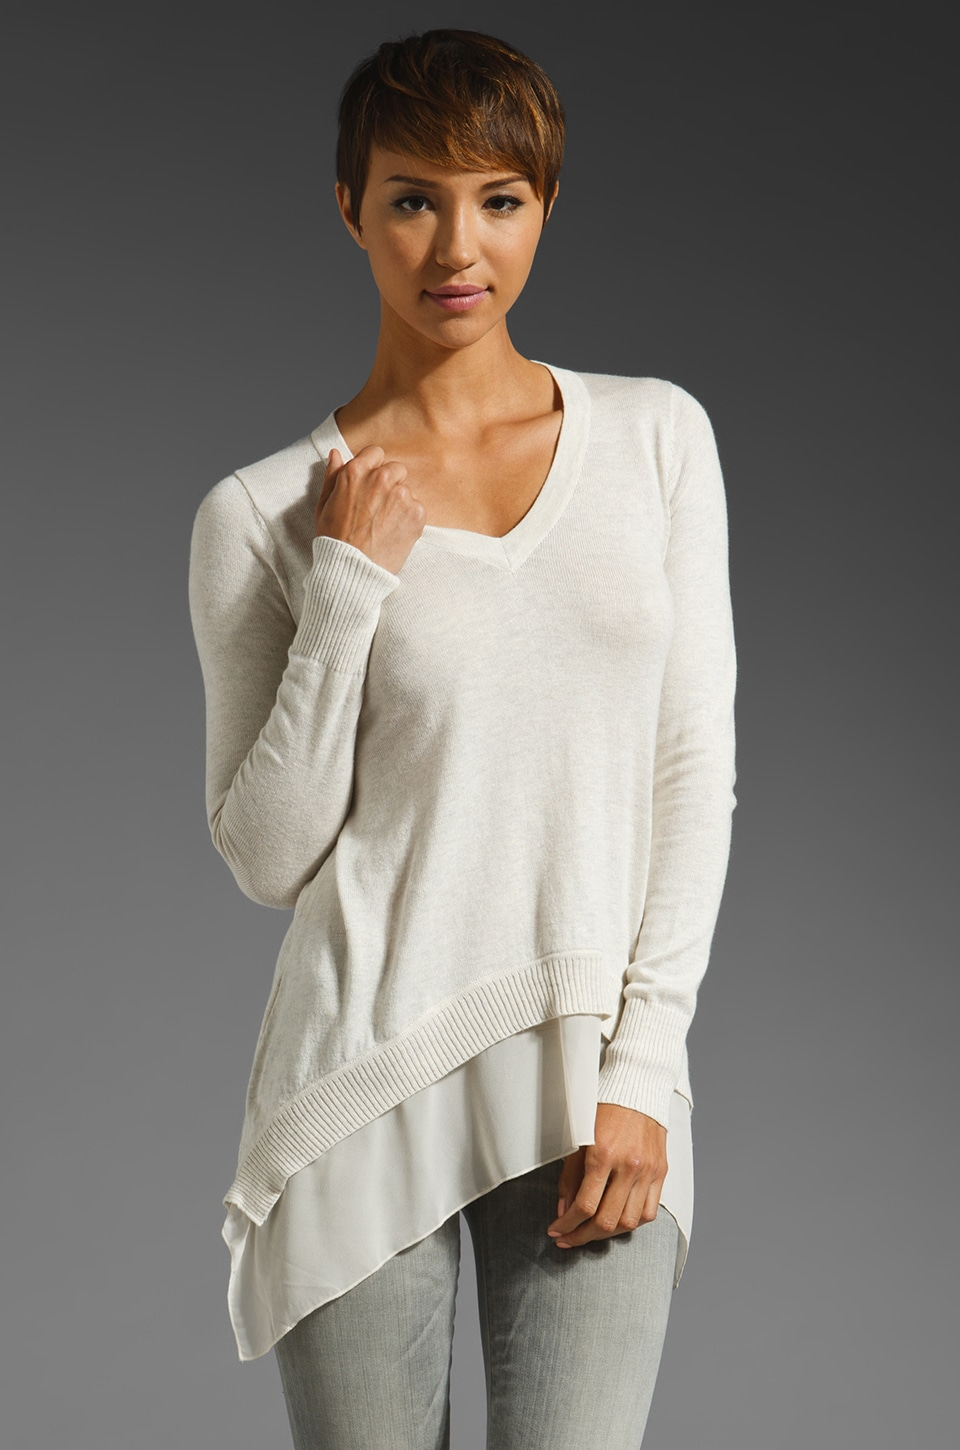 Central Park West Bryant Park V Neck Sweater in Bone